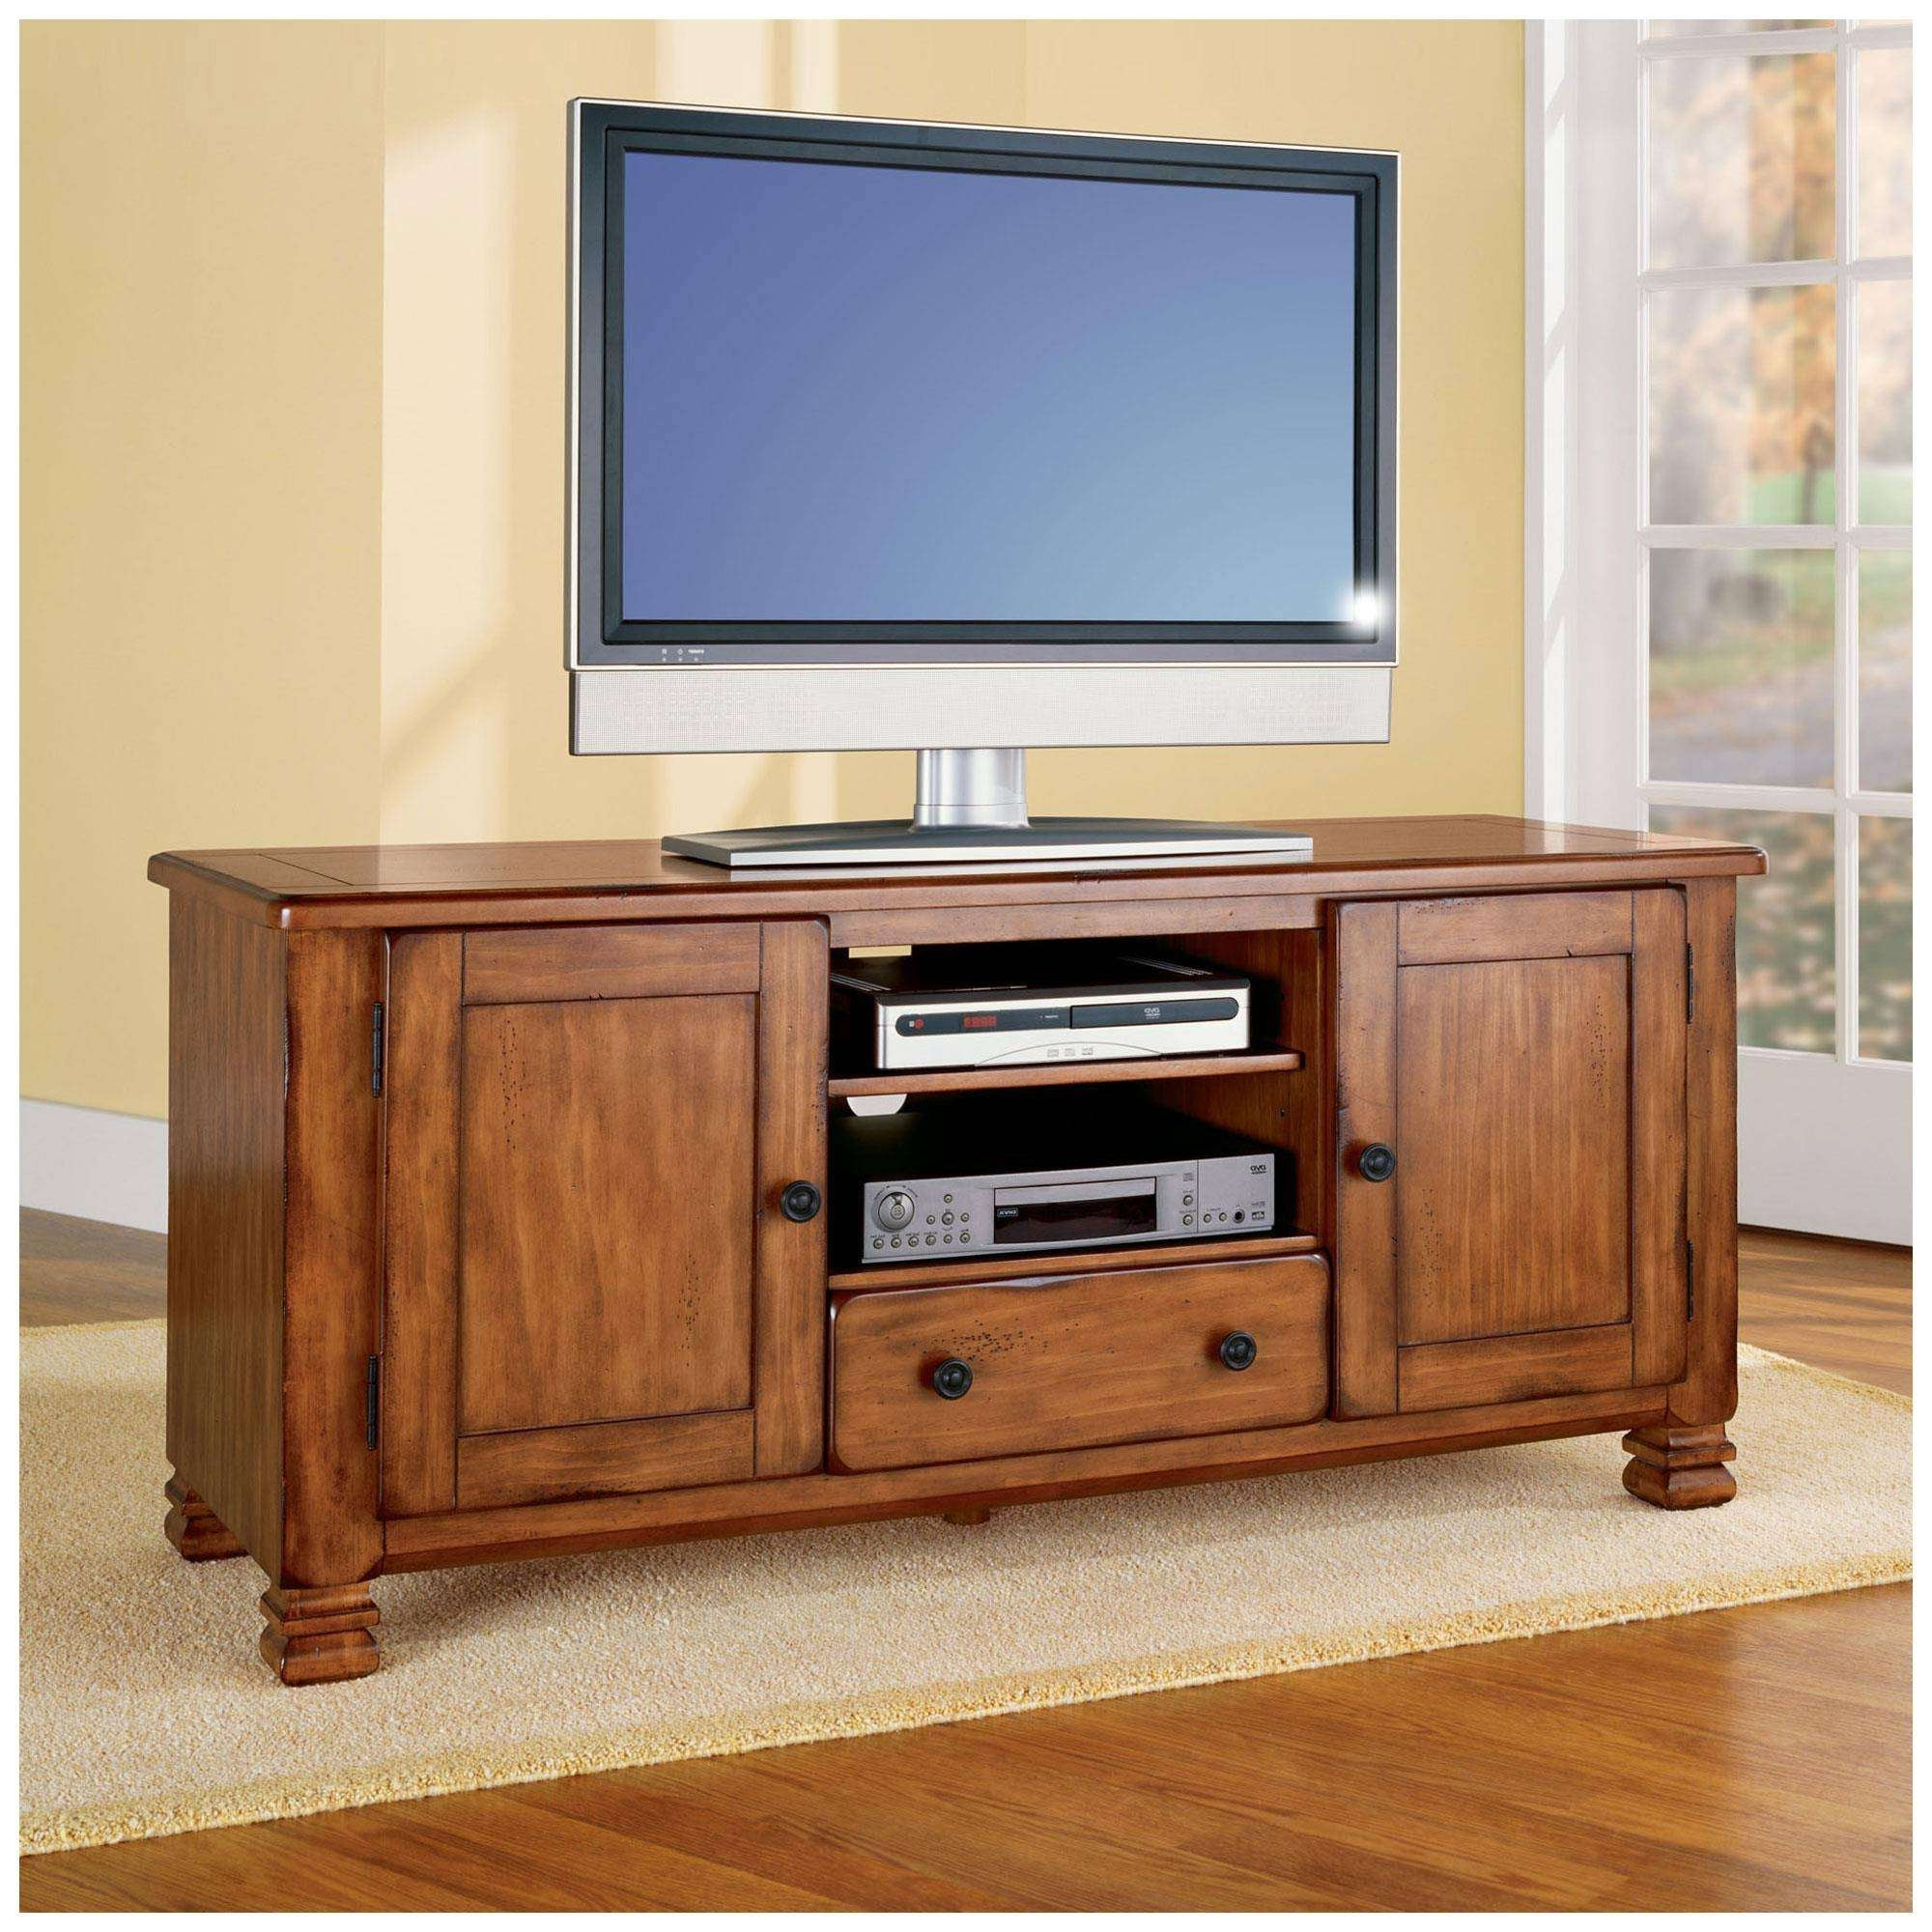 Home Decor: Cozy Wood Tv Stands For Flat Screens And View Photos Pertaining To Light Oak Tv Stands Flat Screen (View 6 of 15)